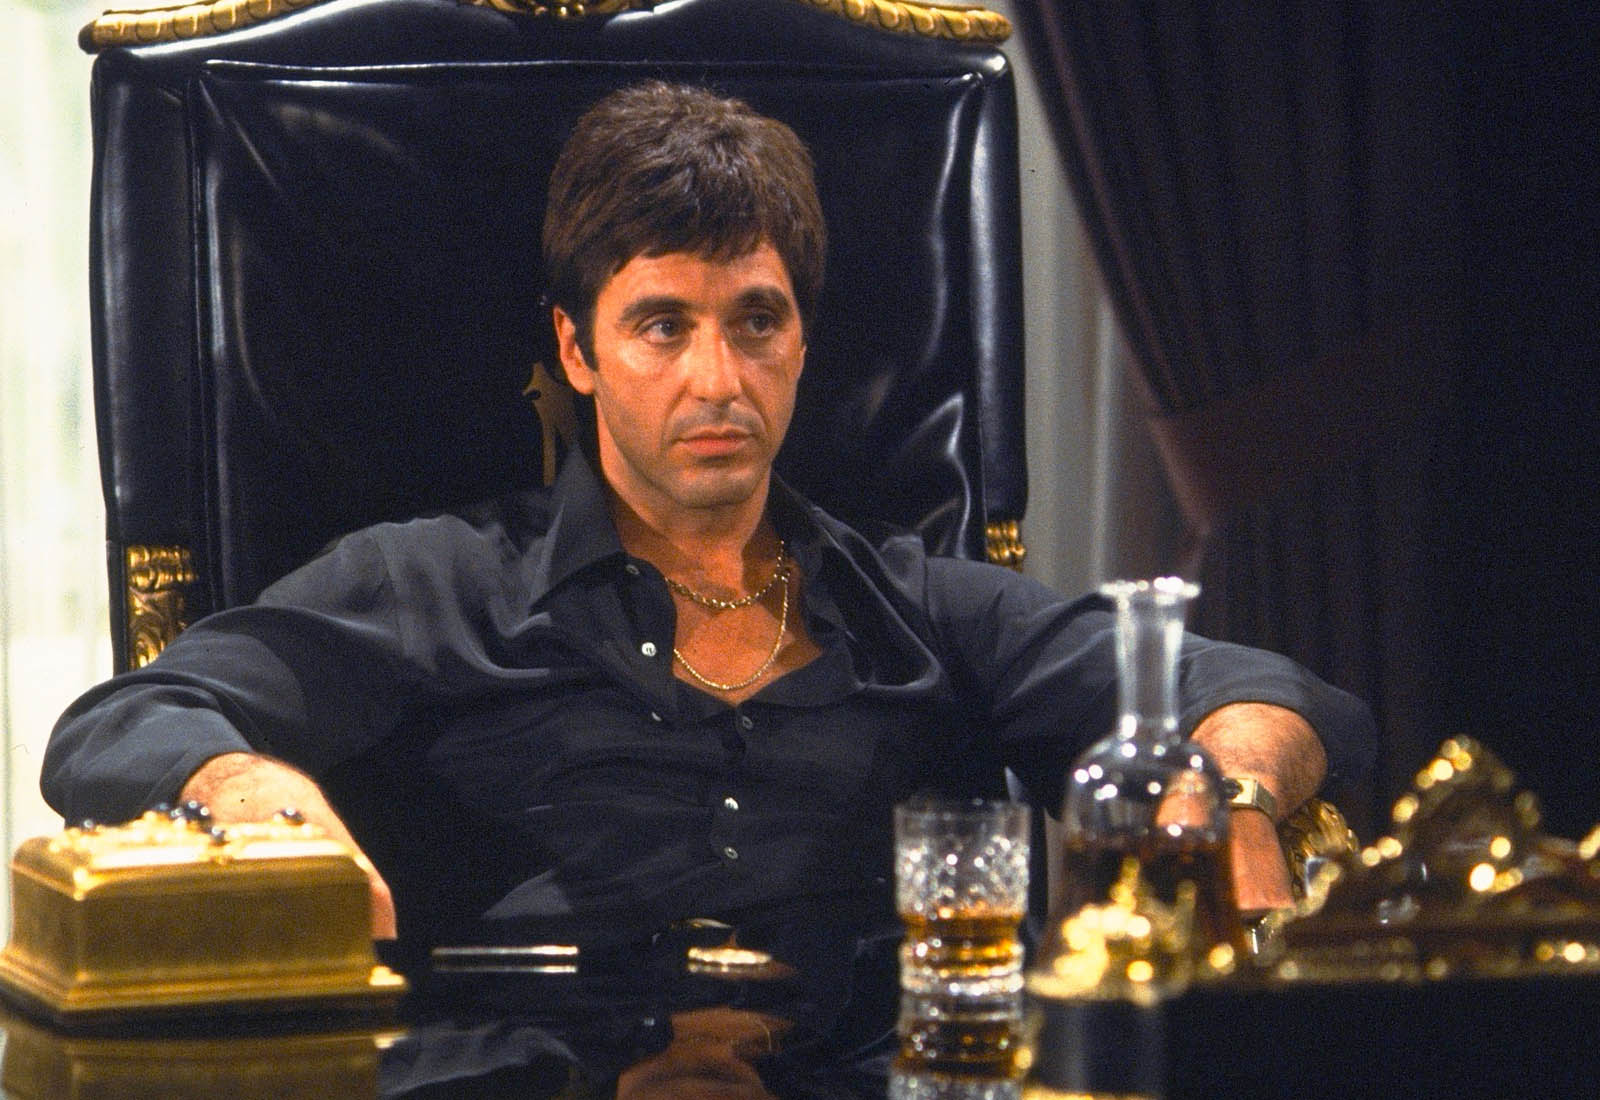 scarface full movie free download mp4